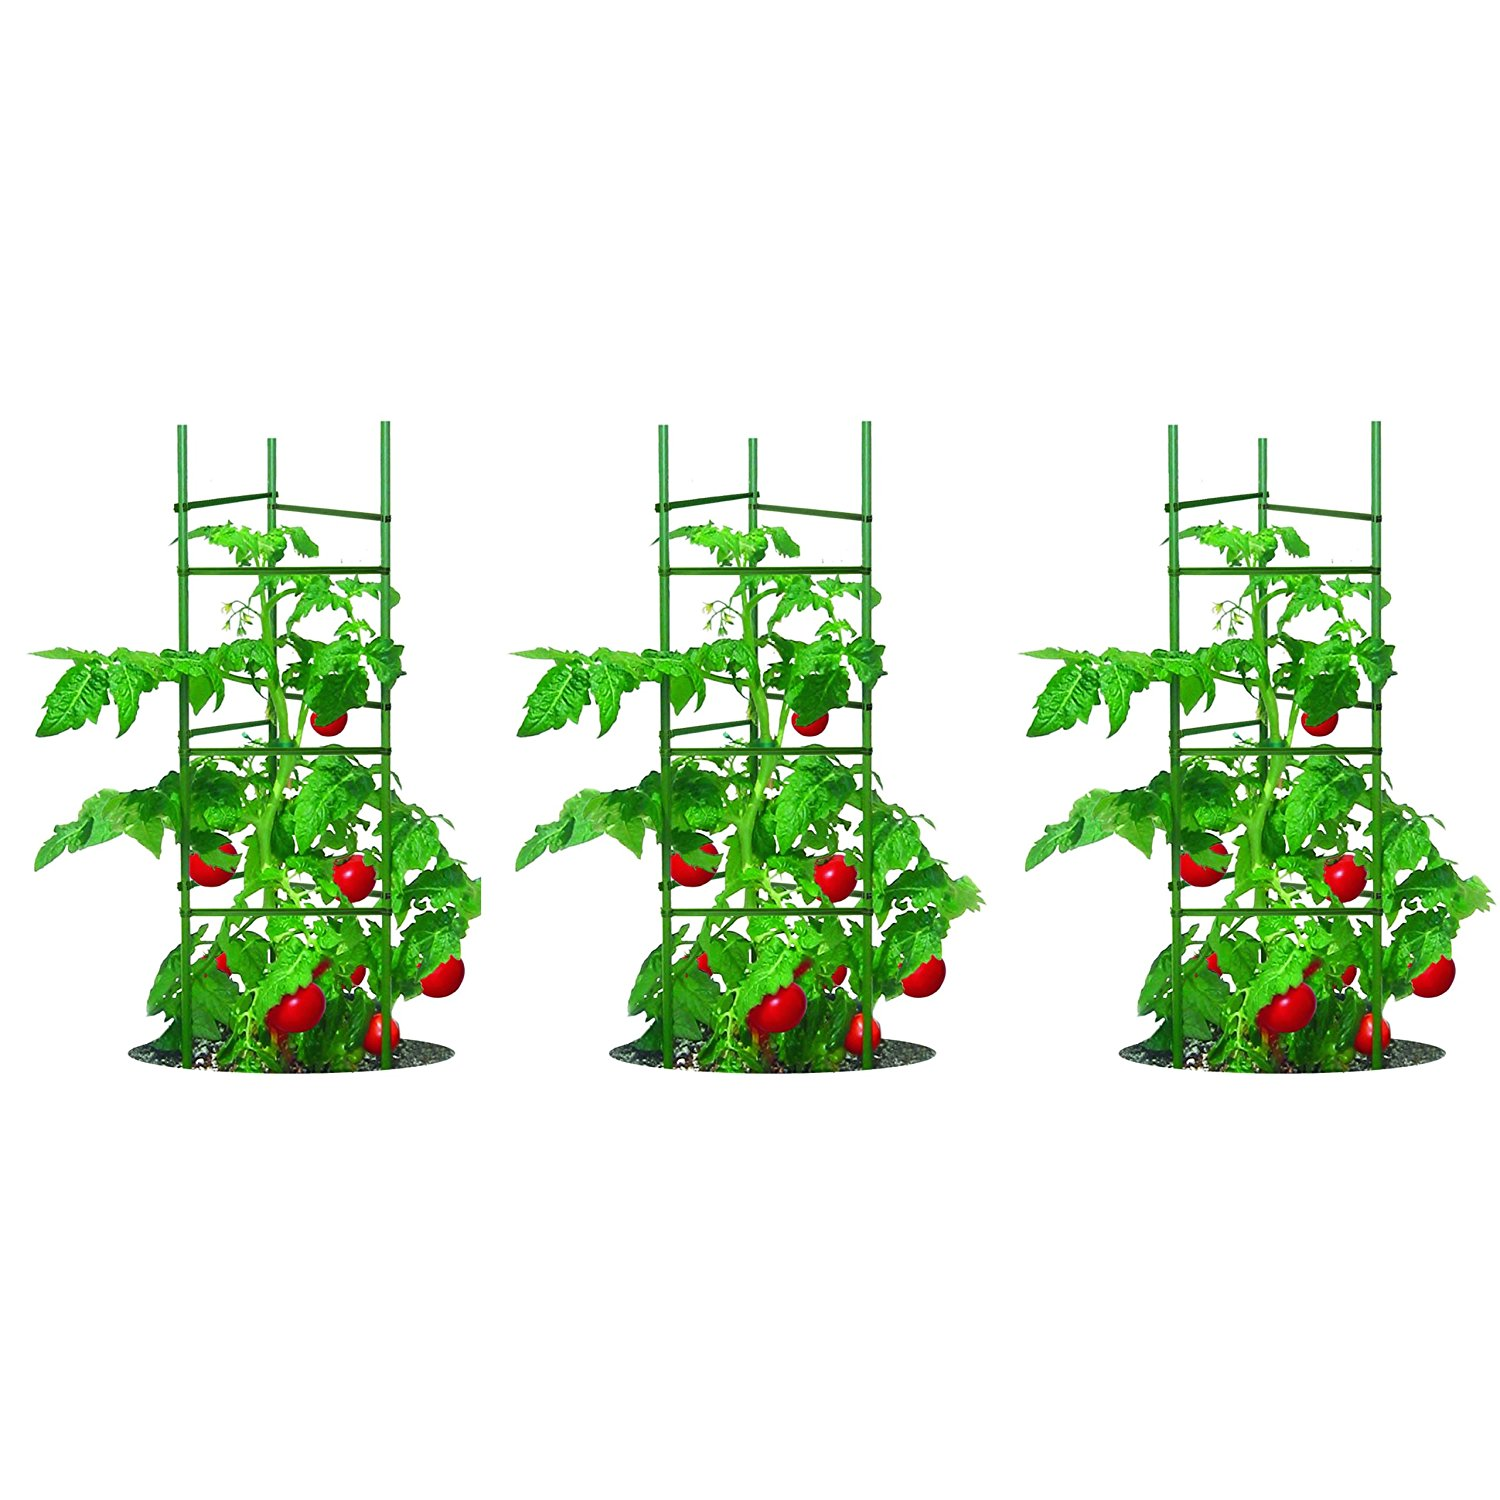 7 Best Tomato Plant Support Cages | Grow Green Food